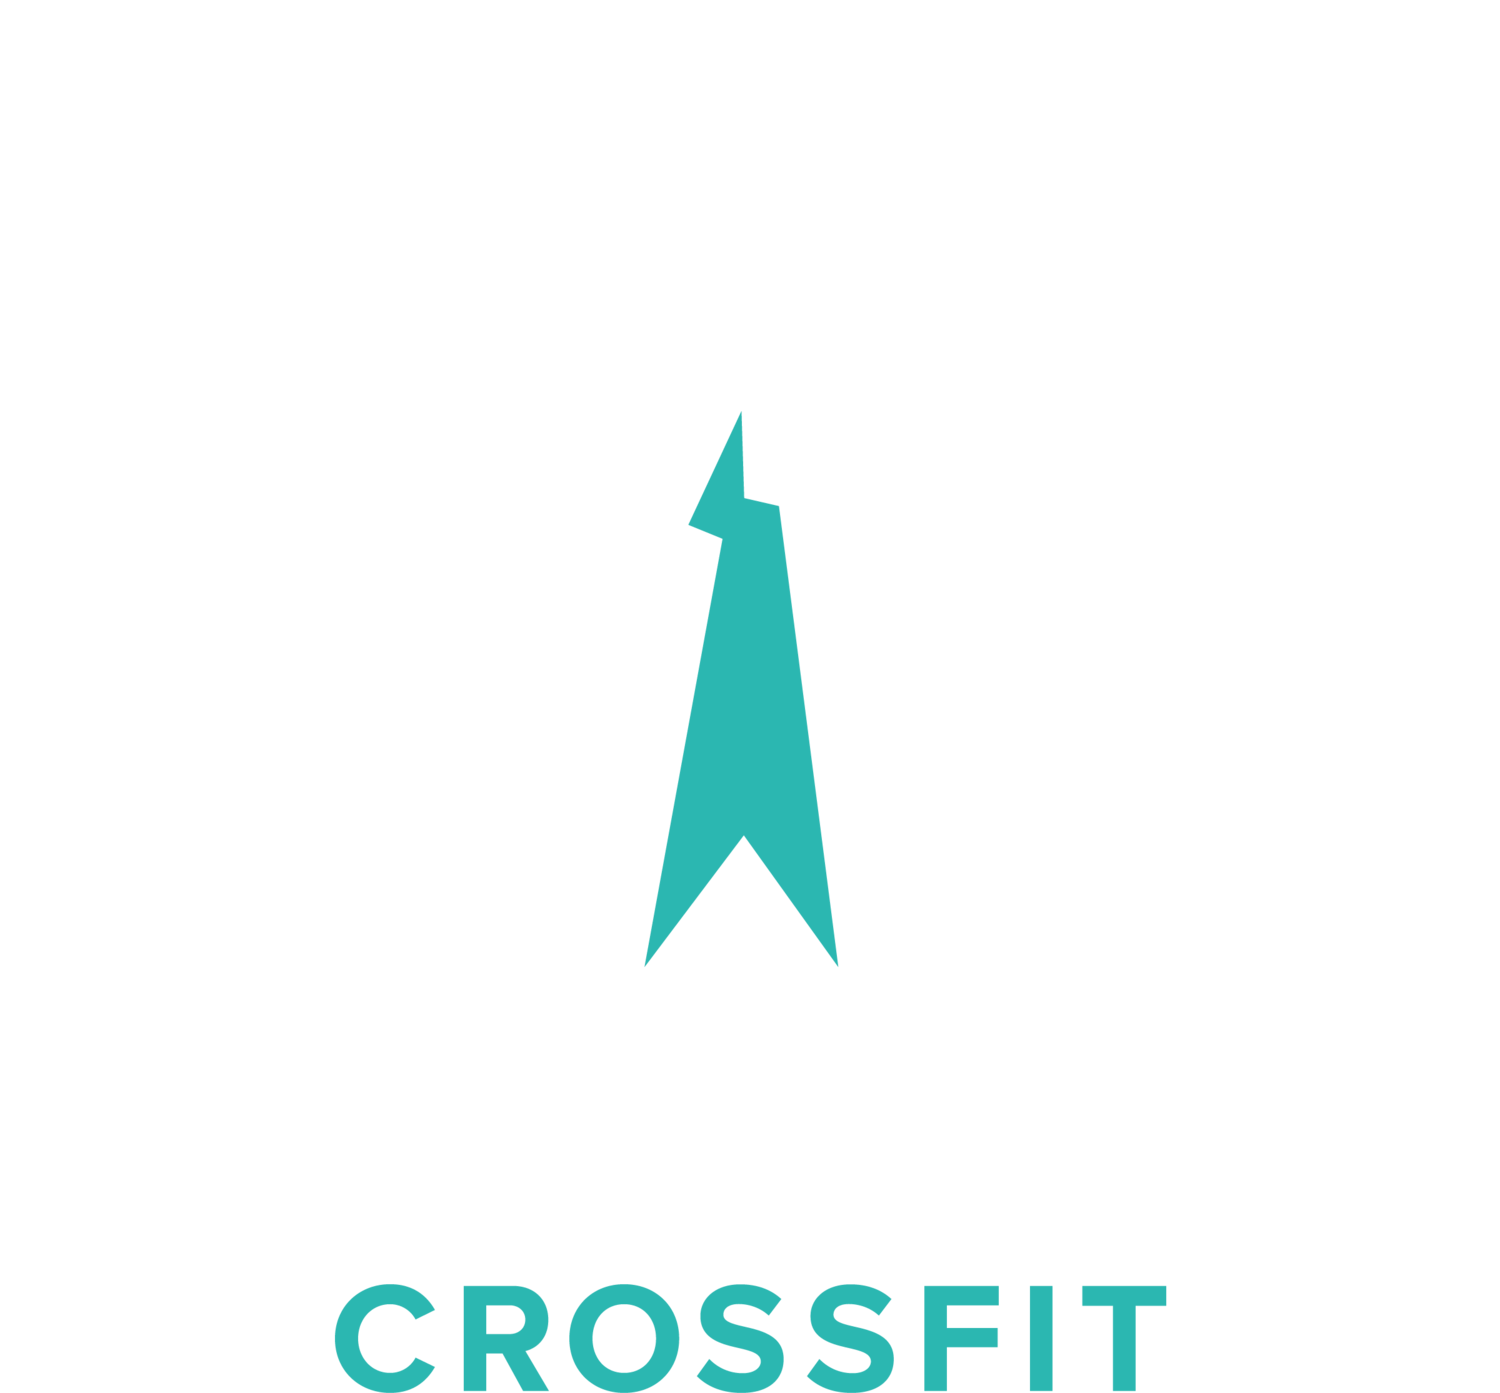 Caffeinated CrossFit – Premier CrossFit Training in Smyrna, Georgia